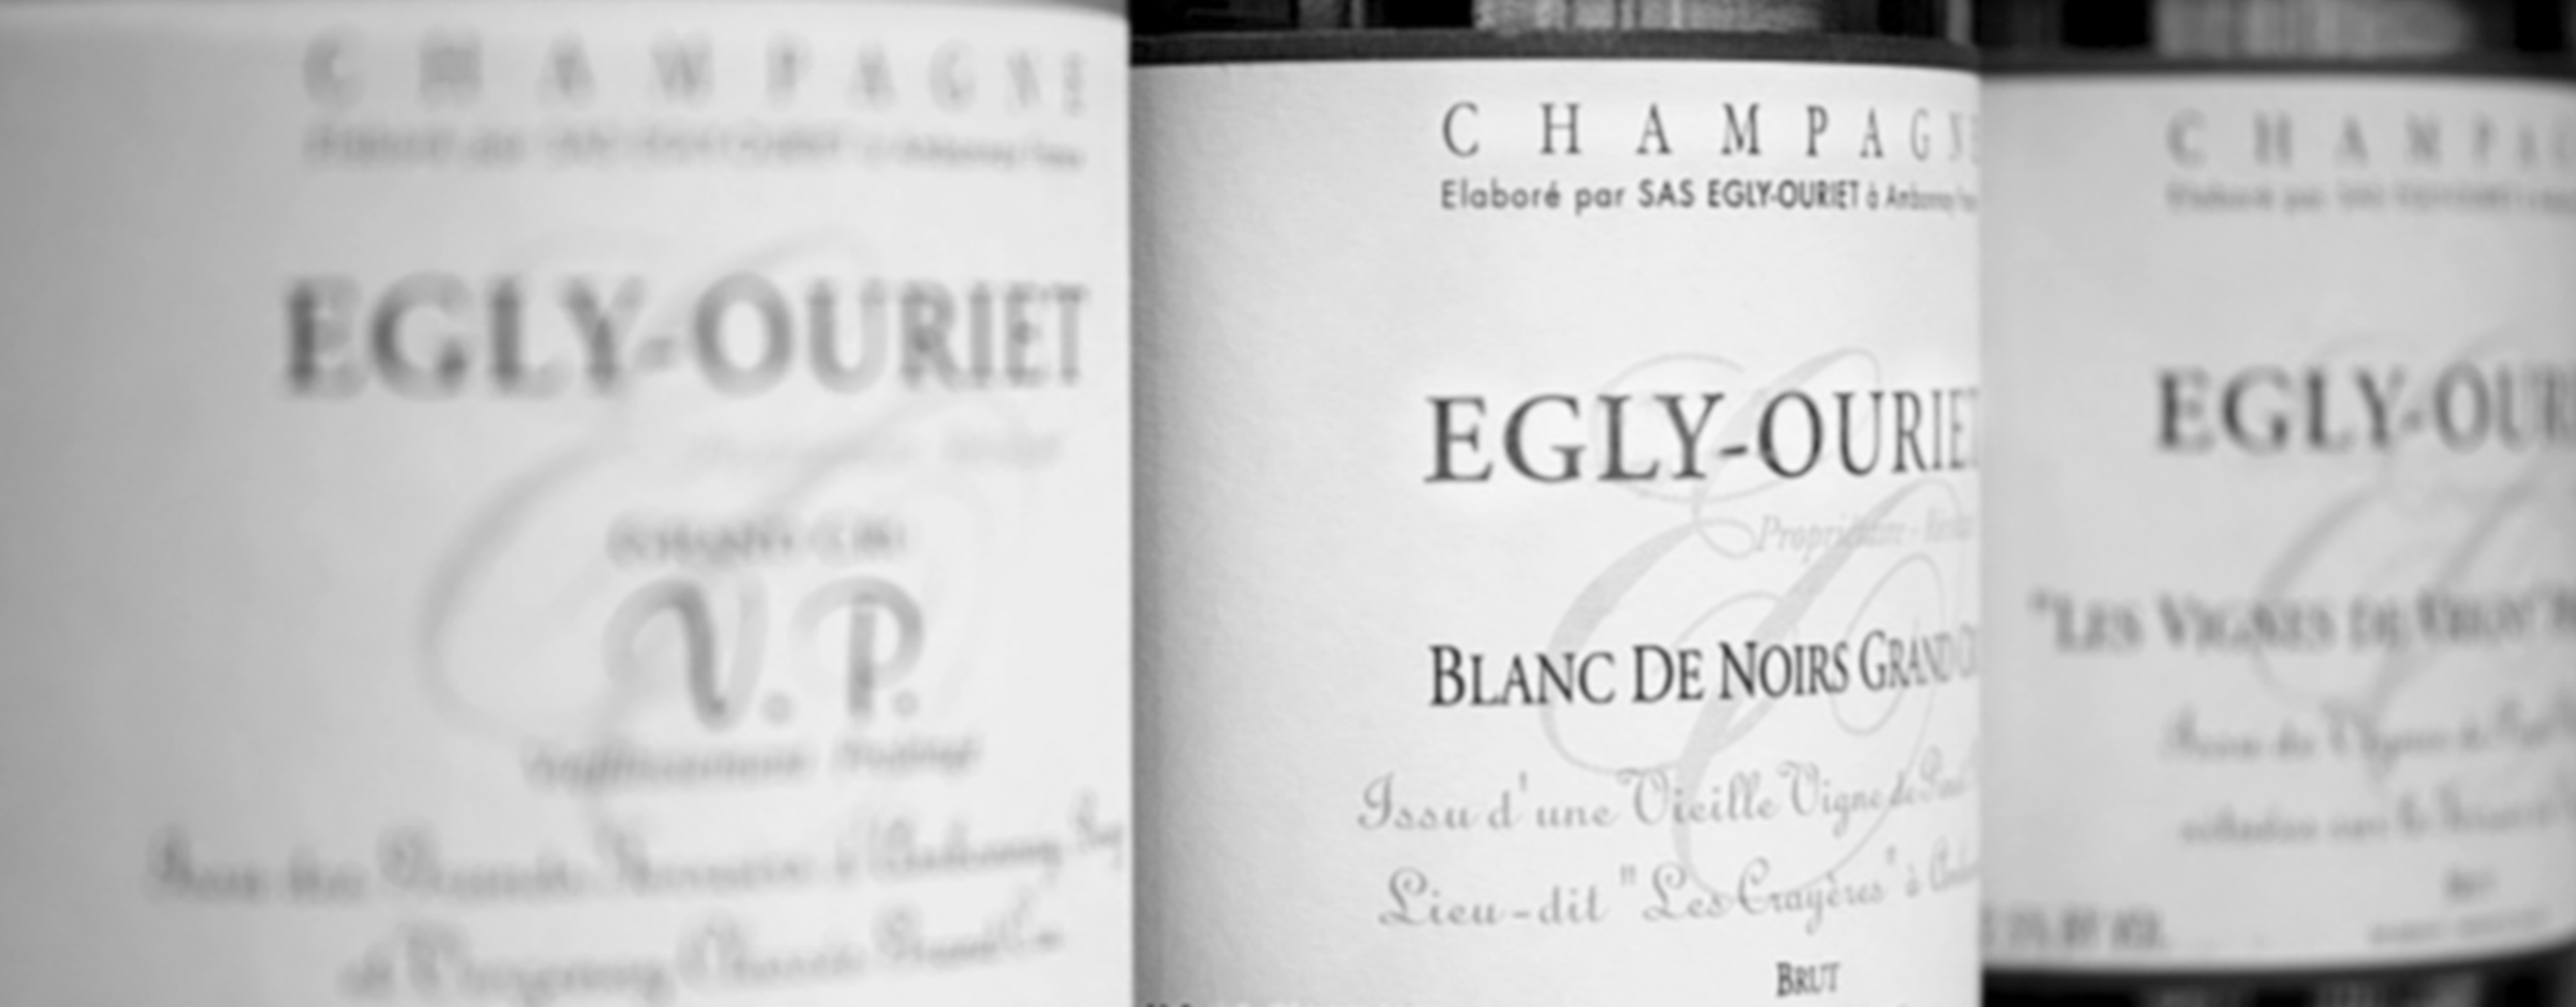 Non-Vintage and Vintage Egly Ouriet